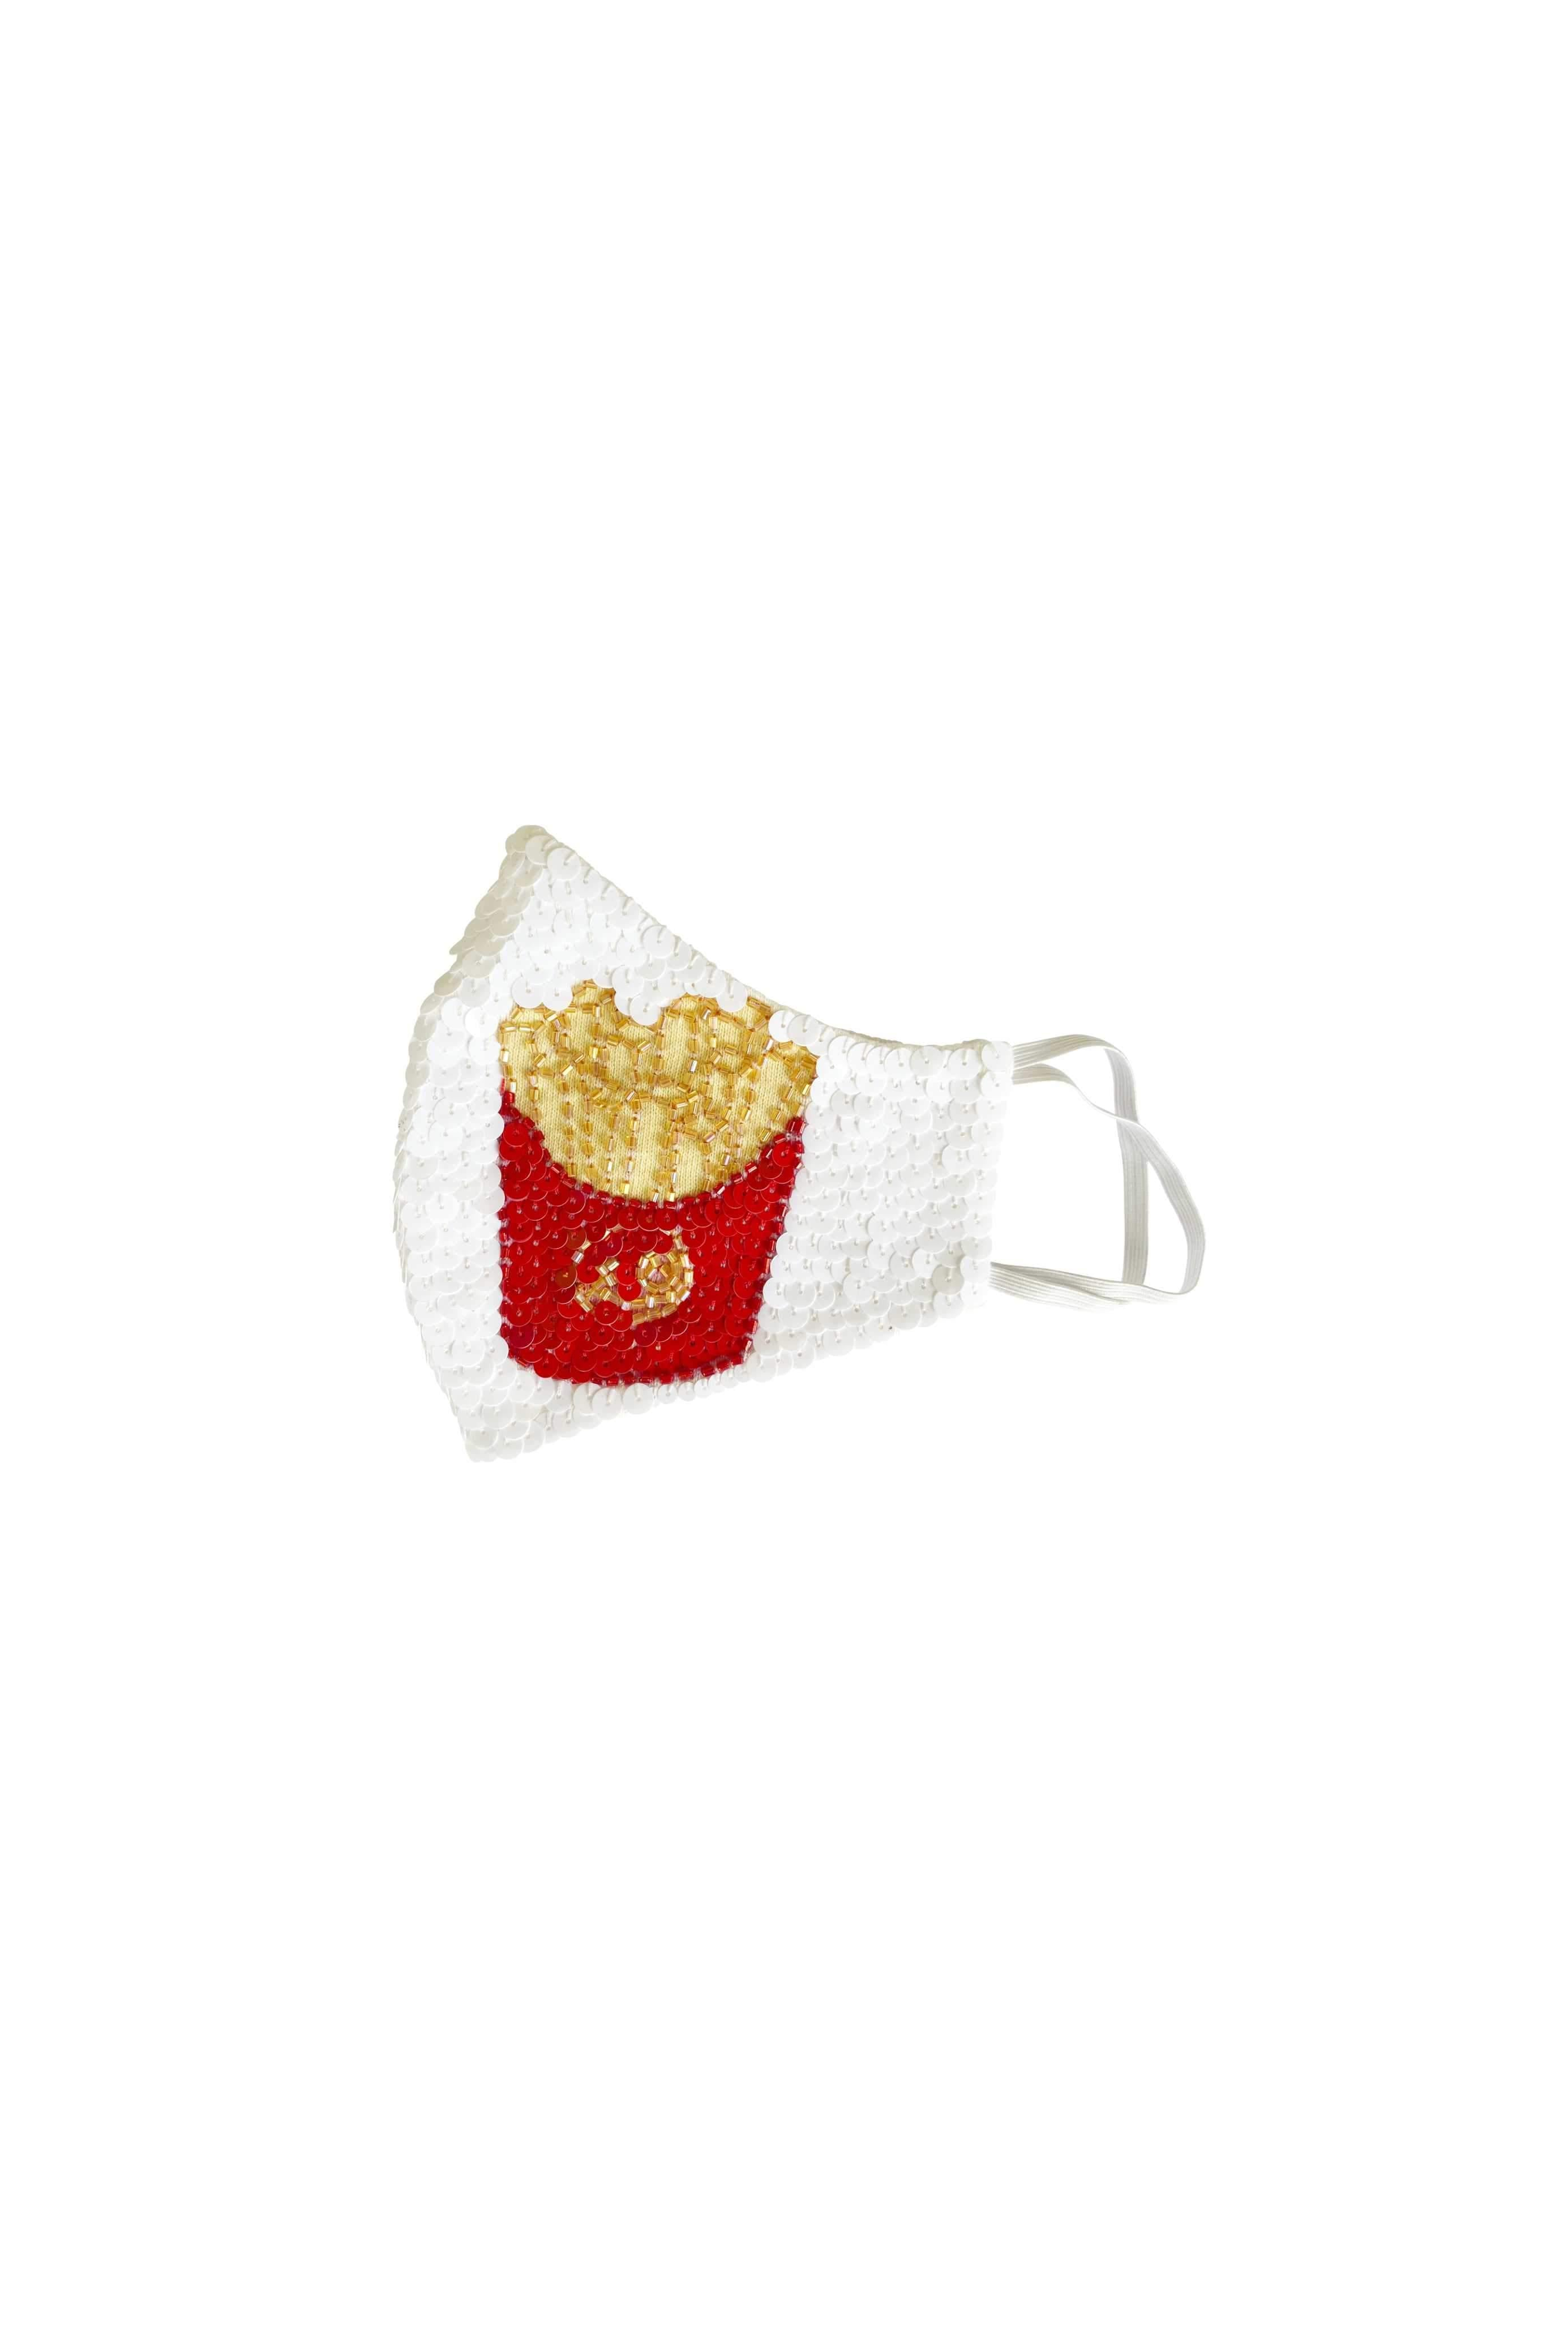 Fries Over Guys Sequin Mask - House of Mua Mua